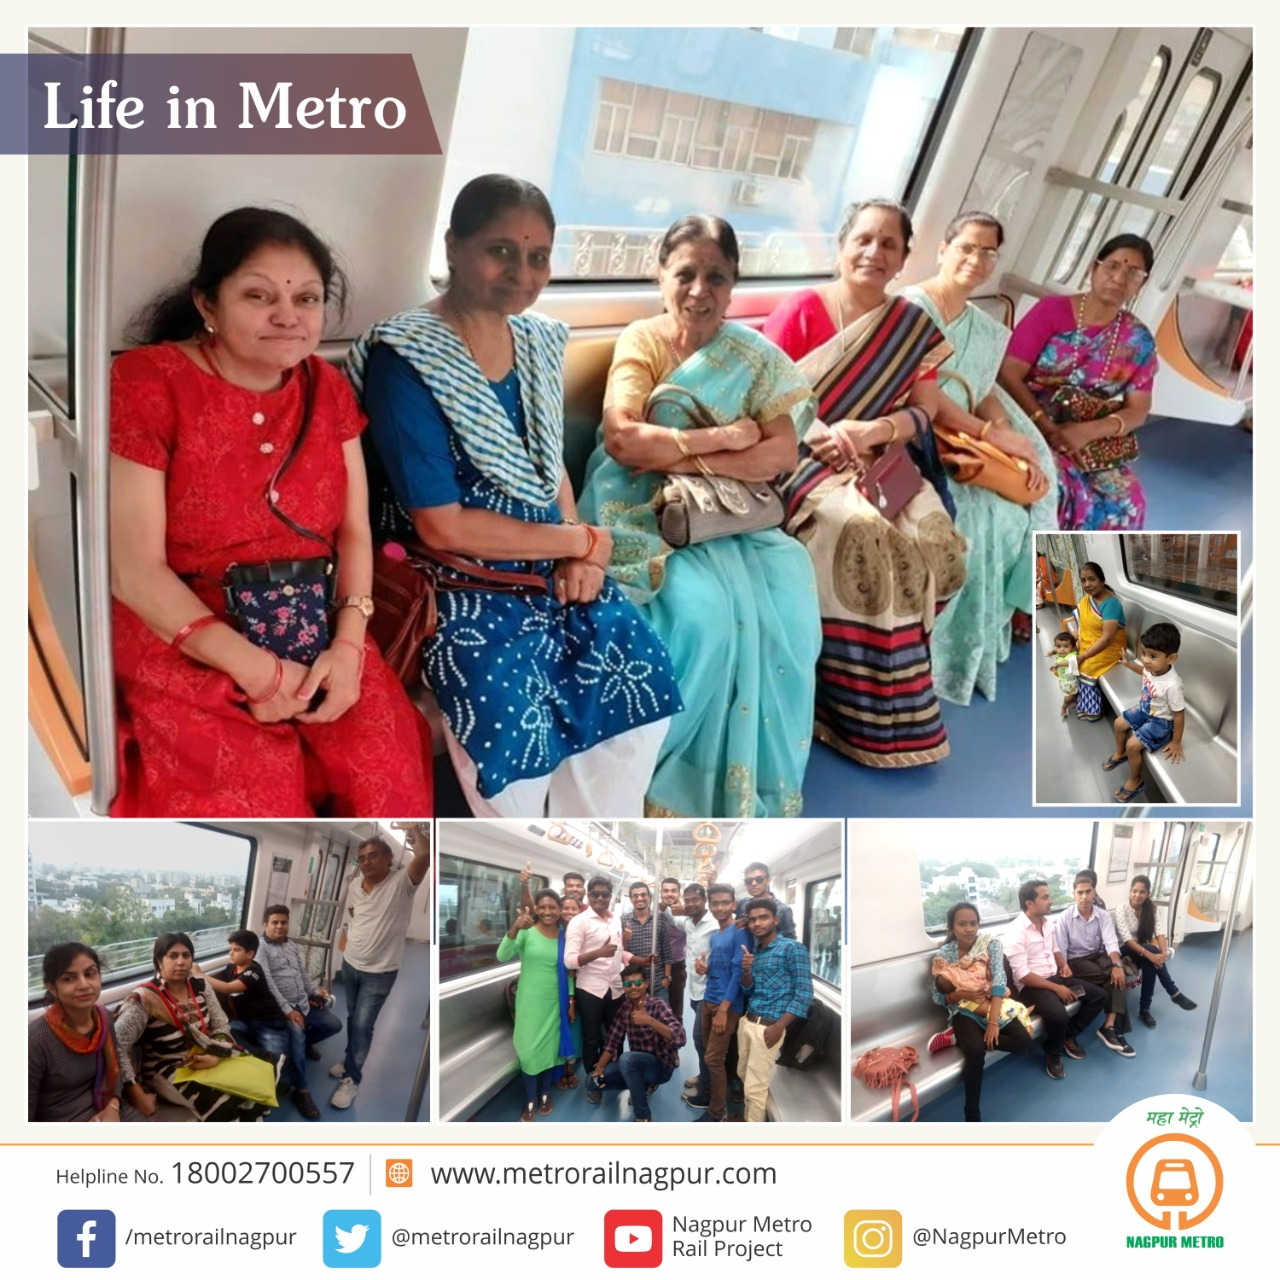 Nagpur Metro Rail On Twitter Life In Metro There Is An Unspoken Bond You Create With The Friends You Travel With Kristen Sarah Mazimetroride Nagpurmetro Happyfaces Https T Co 6unvzy6qcy